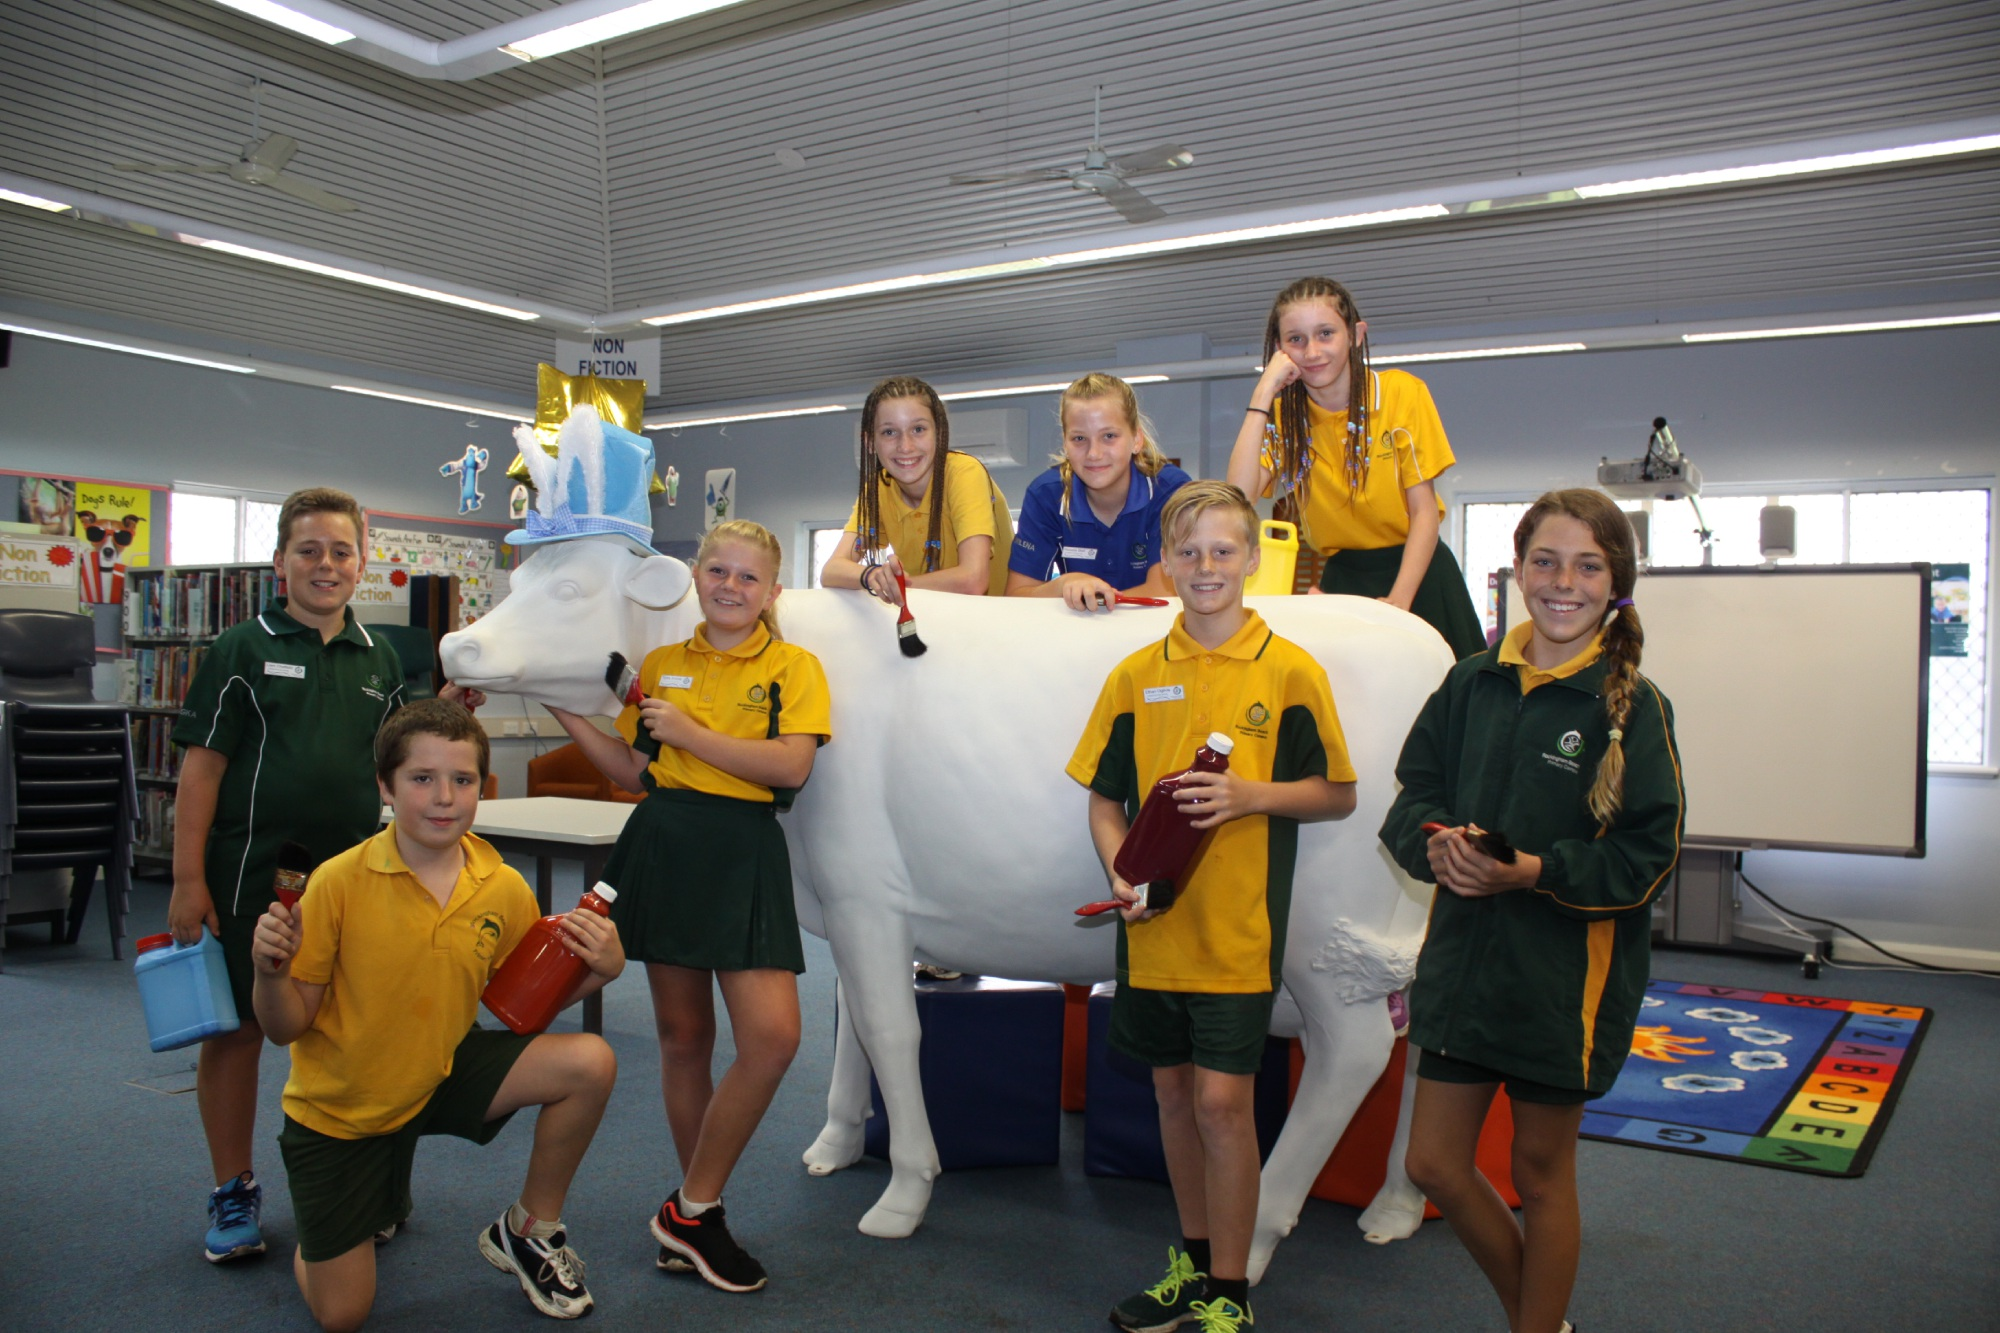 Year 6 students Larni Clark, Kessie Bell and Madison Clark, (front) Liam Chatfield, Jake Houghton, Tylla Irvine, Ethan Ogilvie and Evie Vassallo.